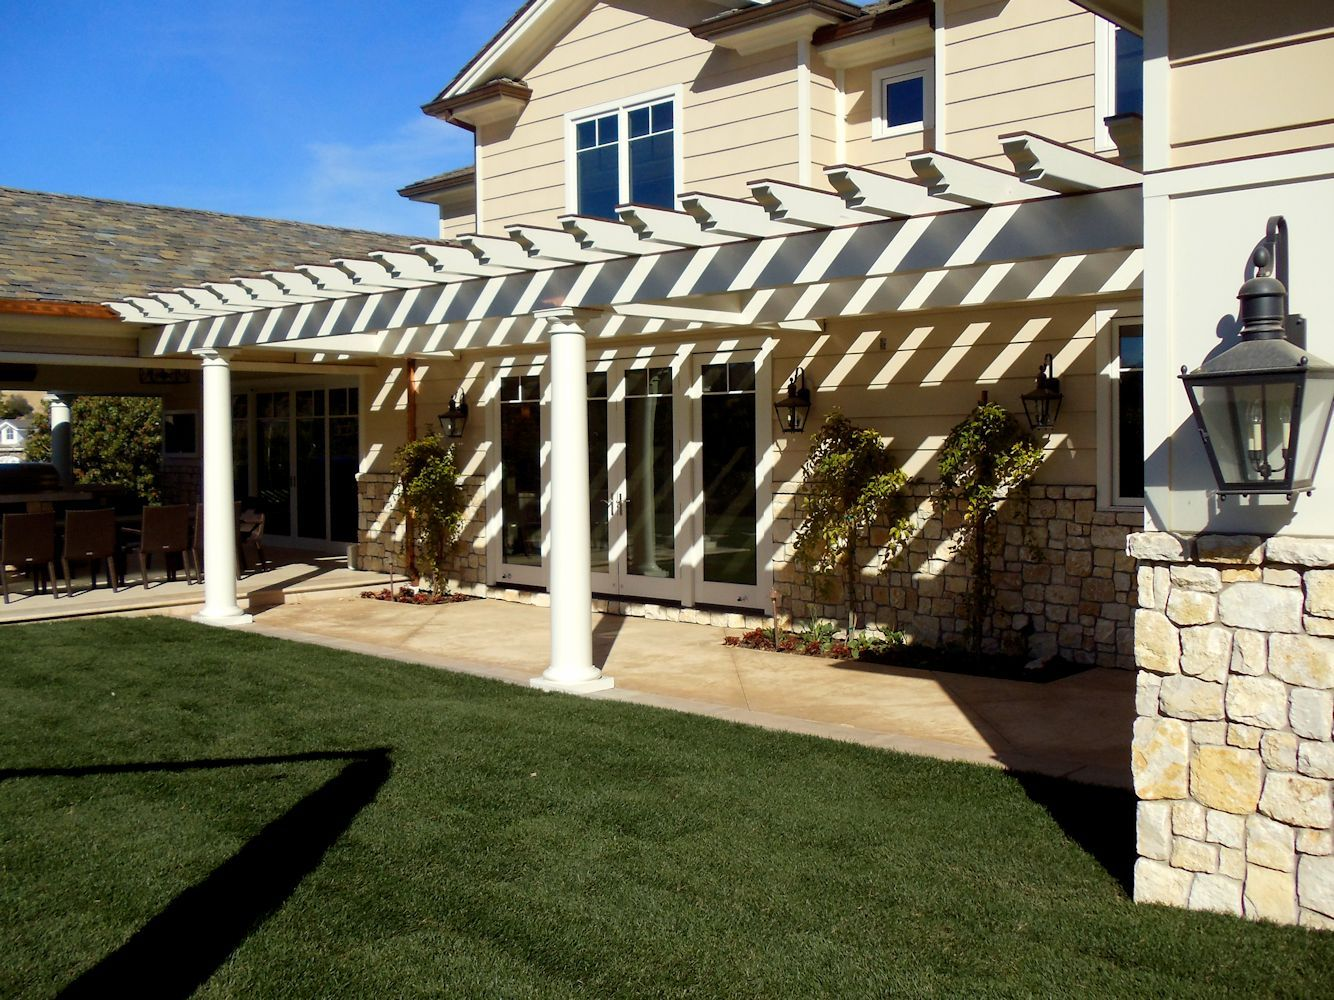 Alumawood Patio Cover Superior Awning Southern California Patio Residential Awnings Covered Patio